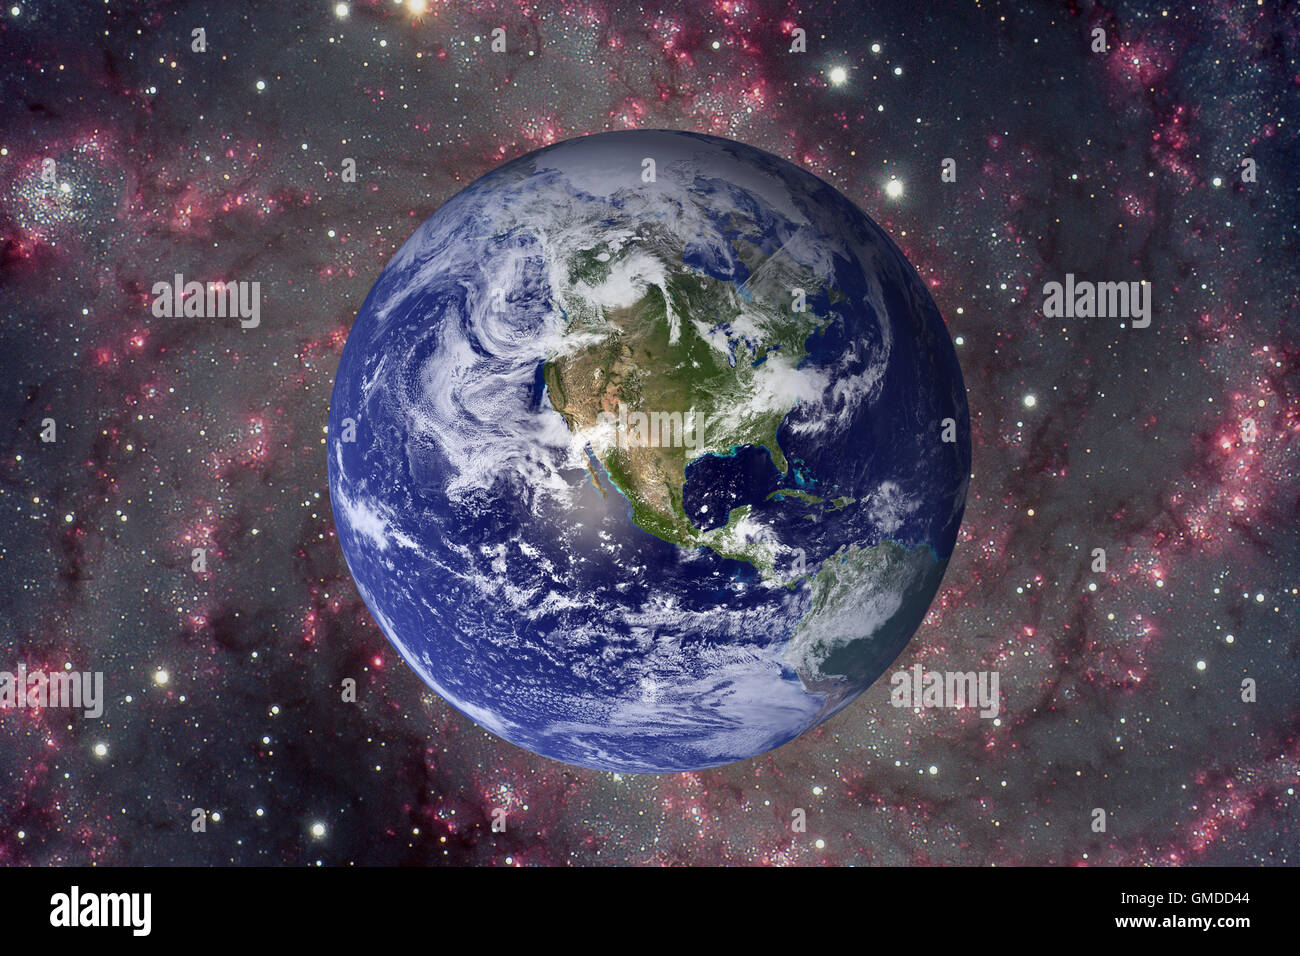 Which Is The Densest Planet In The Solar